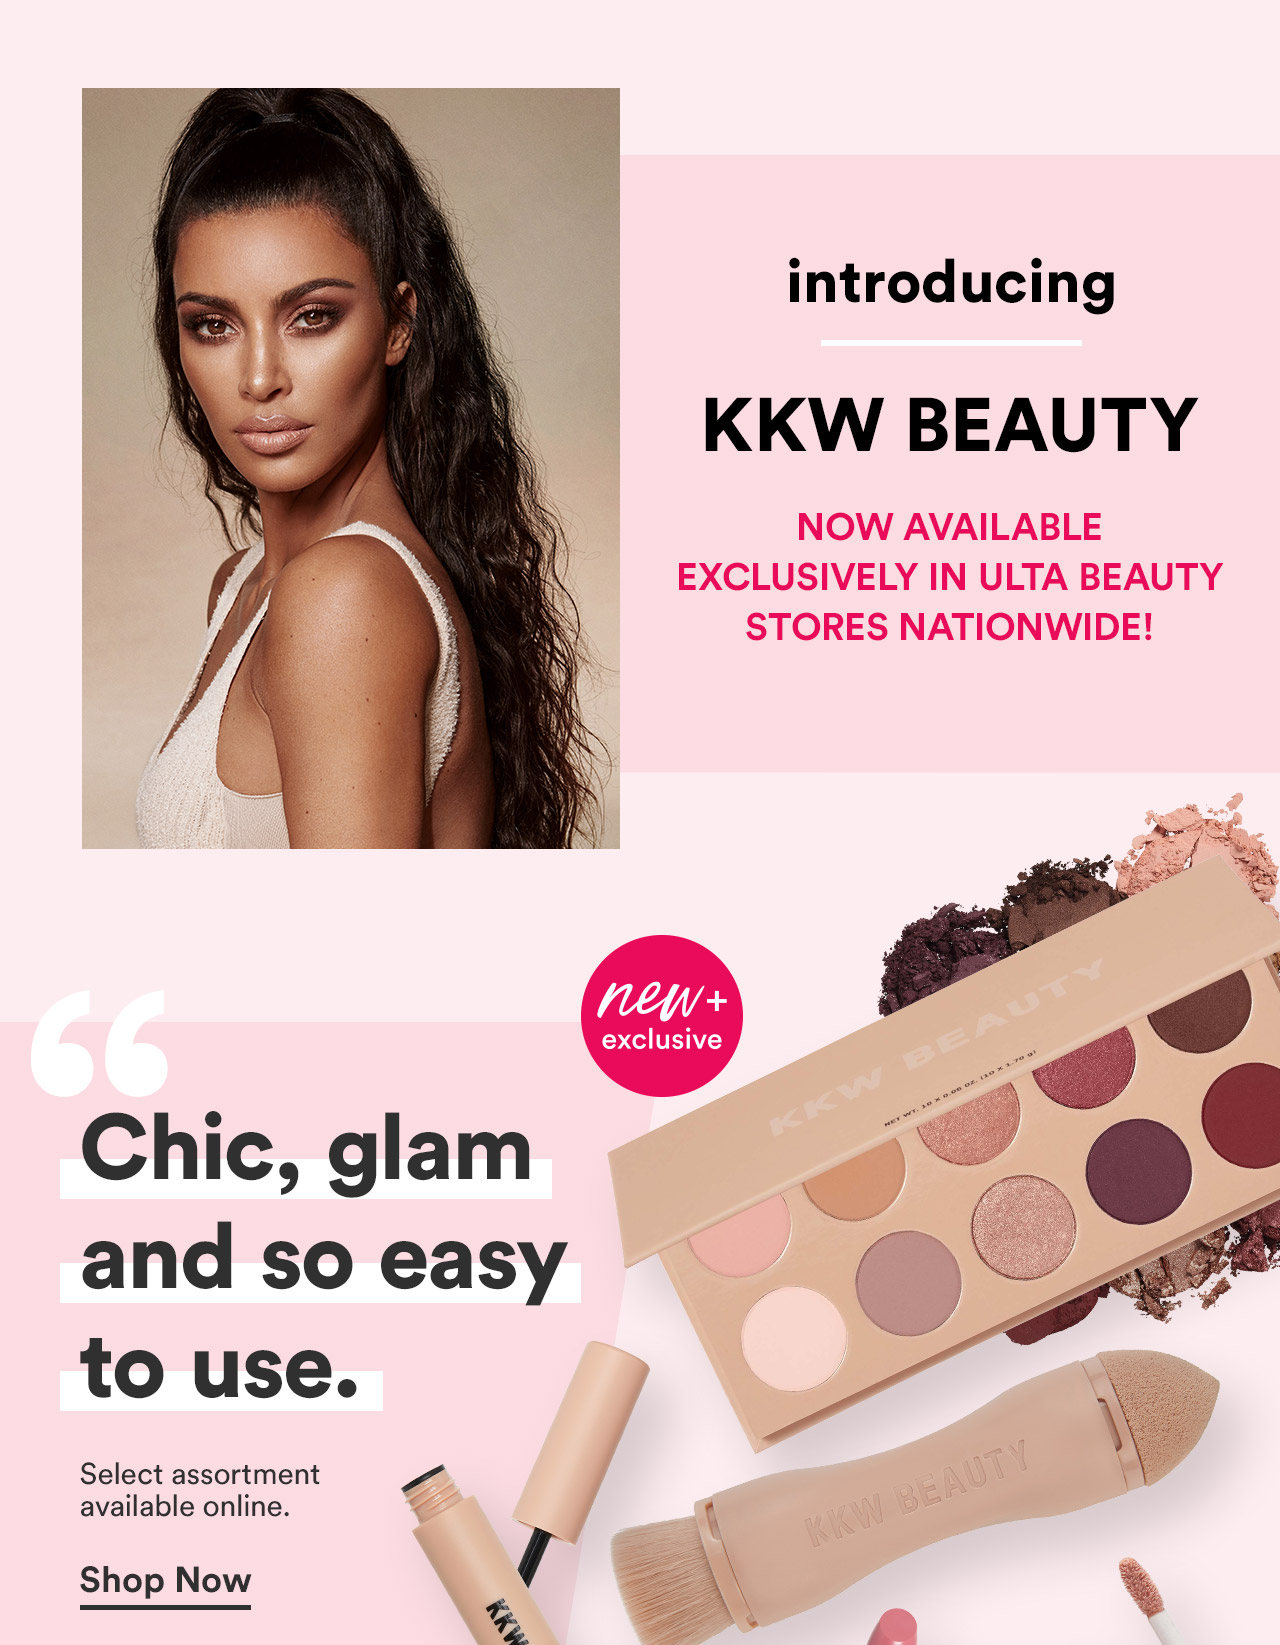 Now Available Exclusively in Ulta Beauty Stores Nationwide!